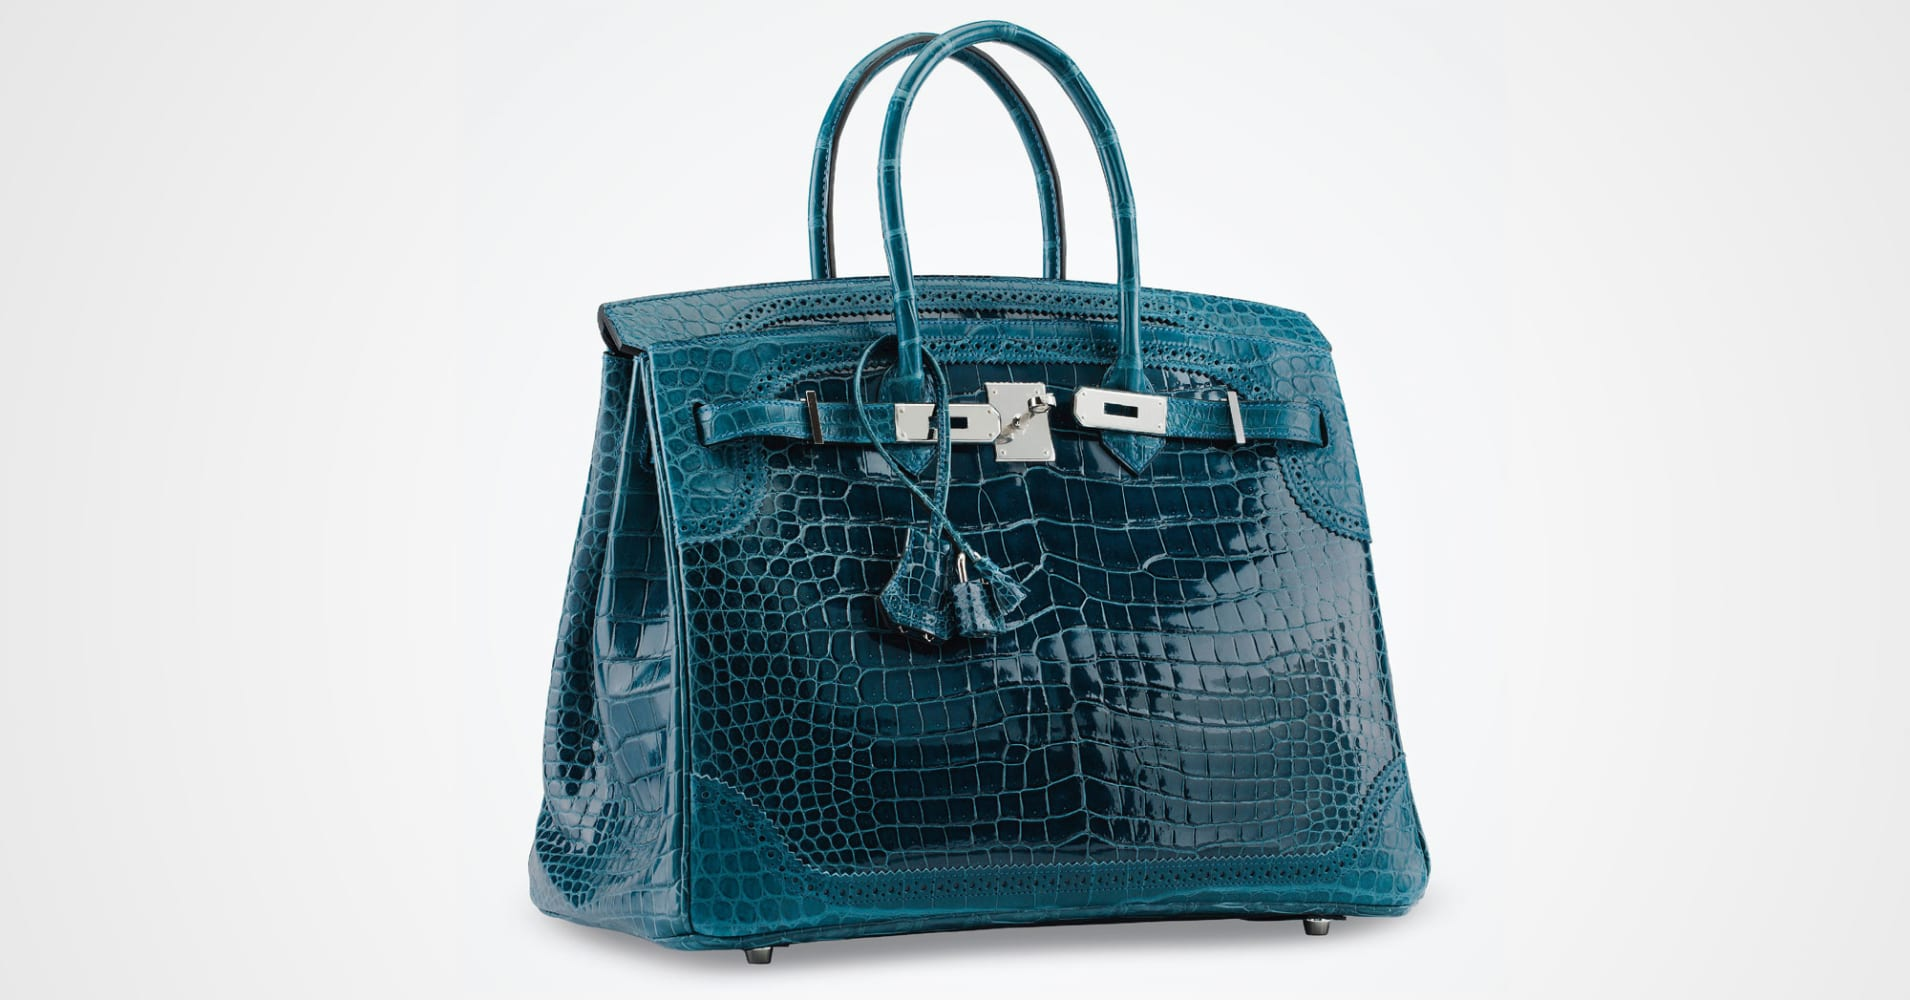 This Hermès Birkin Handbag Is Expected To For Over 50 000